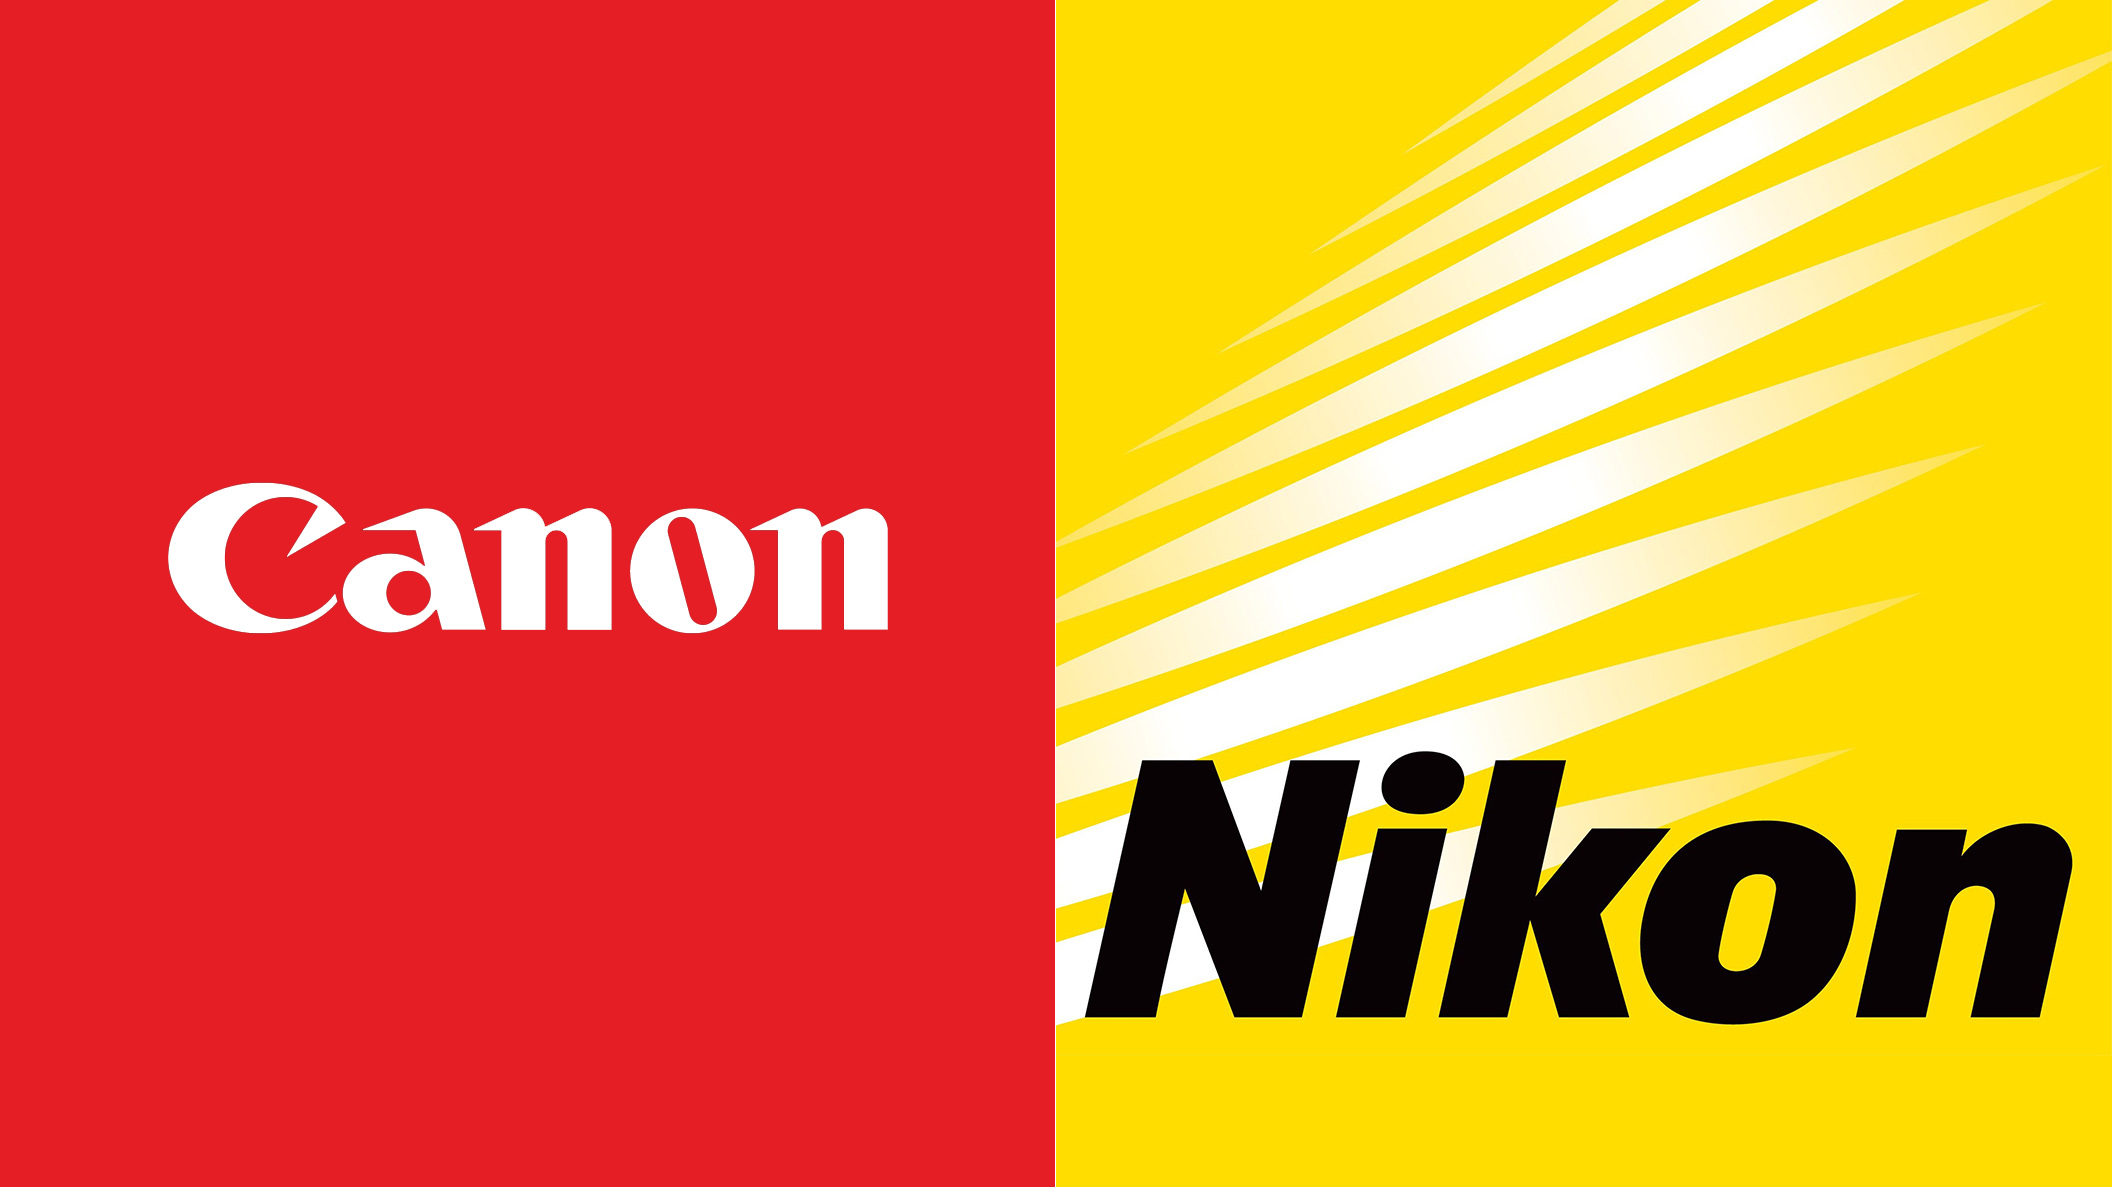 Canon vs Nikon: which camera should you buy? | TechRadar